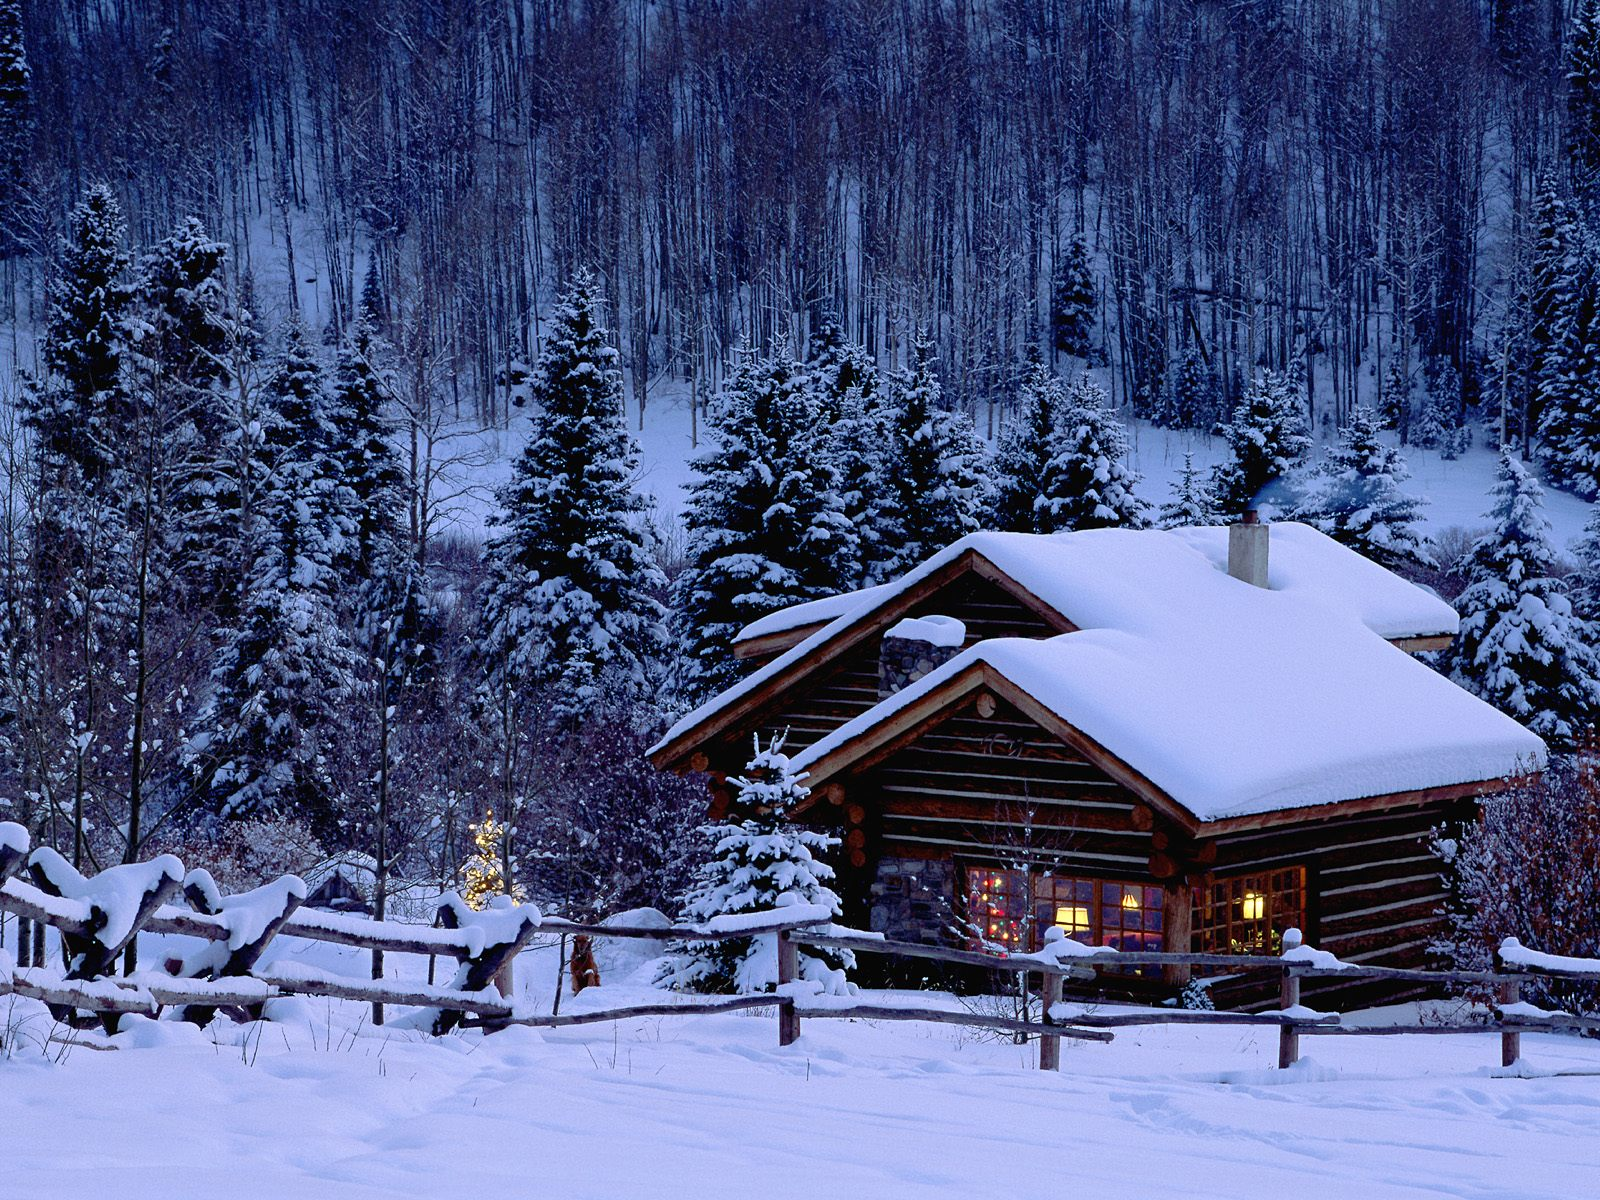 Winter wallpaper and other Nature desktop backgrounds Get 1600x1200